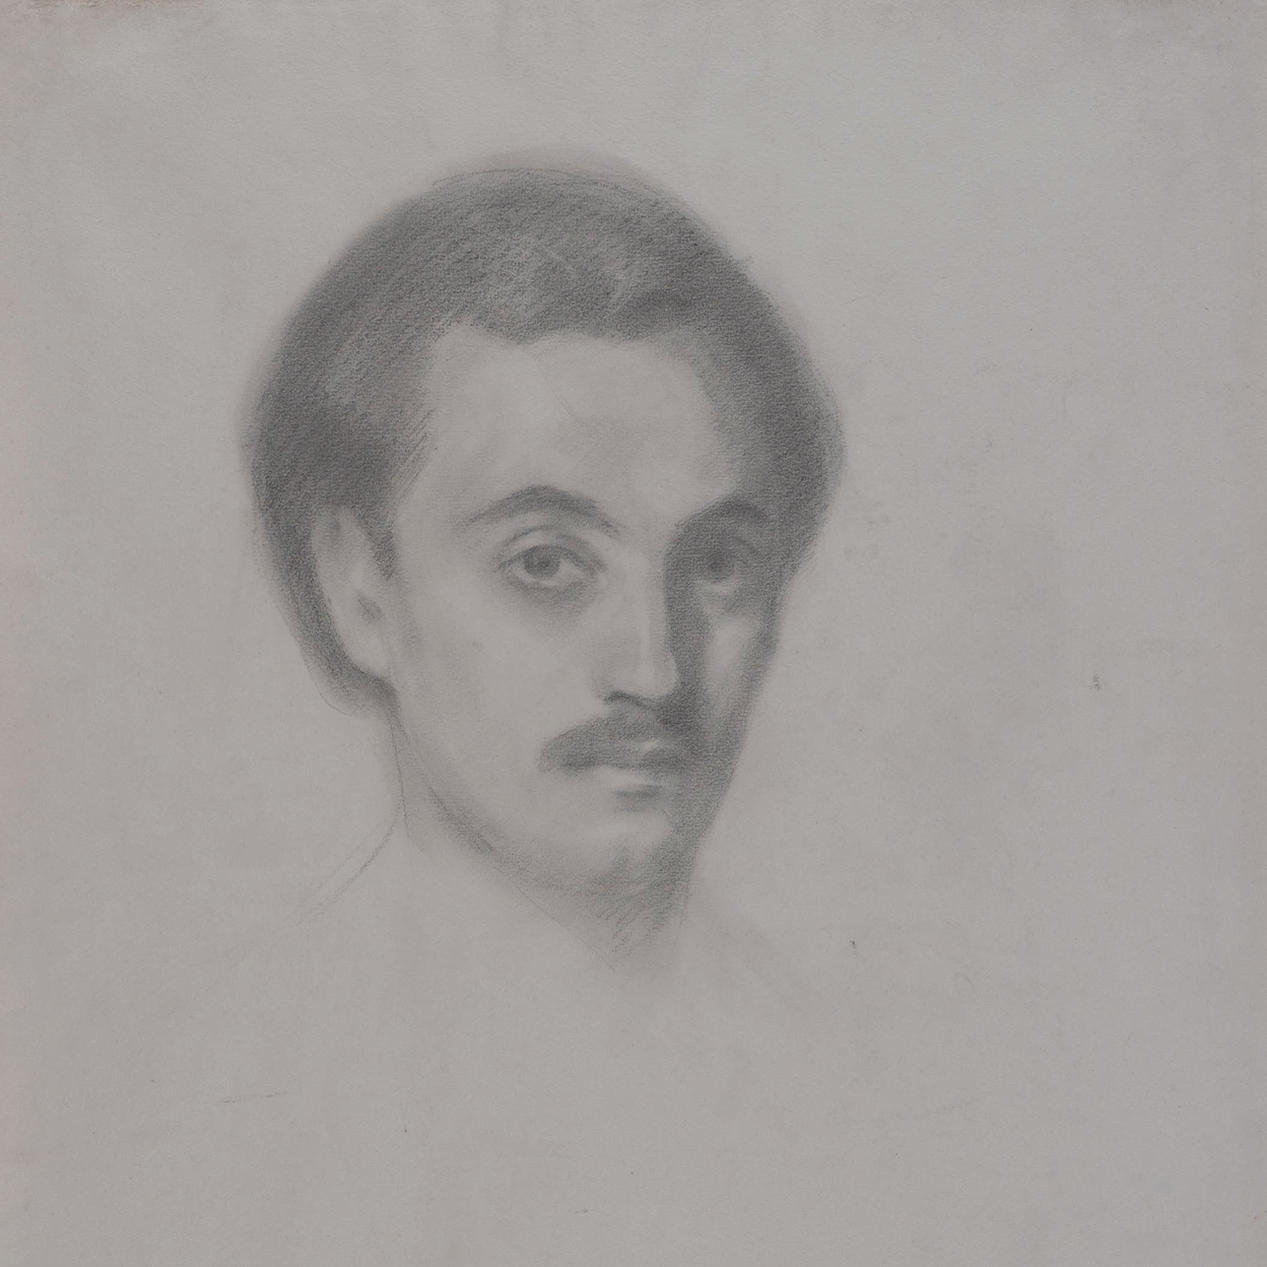 Jibran Khalil Jibran, Self Portrait, pencil on wove paper, 1910. Telfair Museum of Art, Savannah, Georgia.